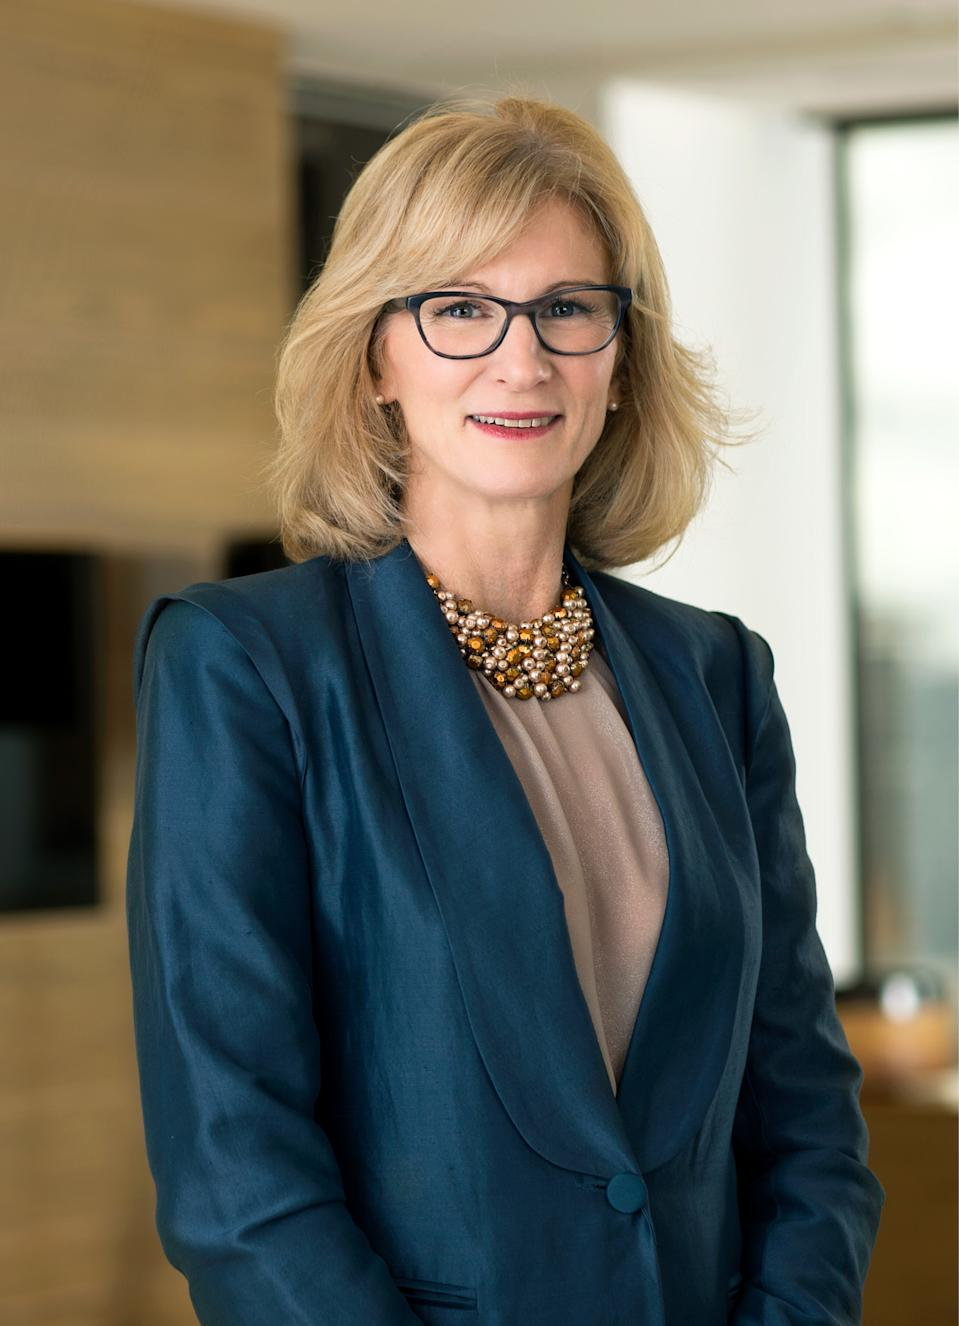 A photo of Catherine Norman, FAR Limited's female CEO.